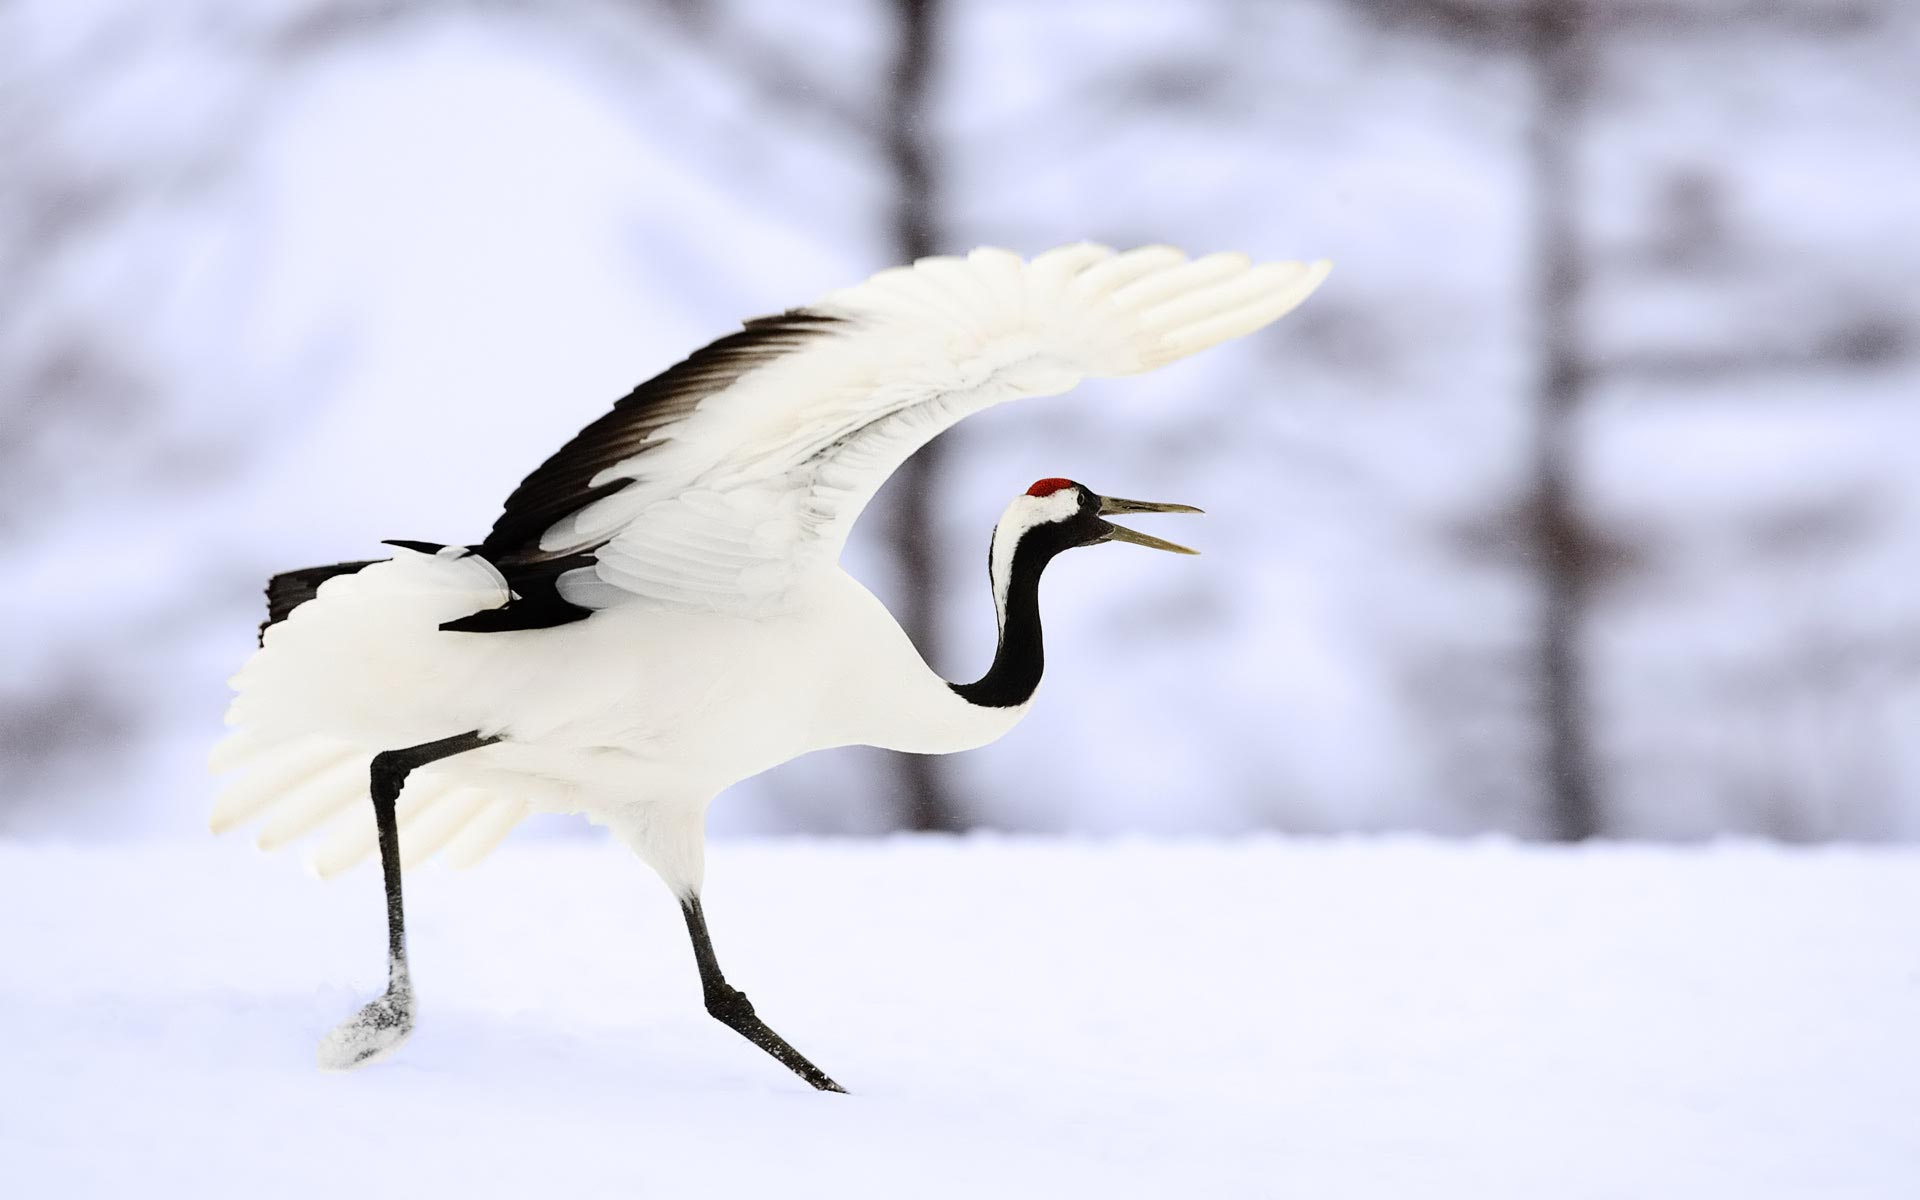 Lovely Crane Bird Wallpaper 38435